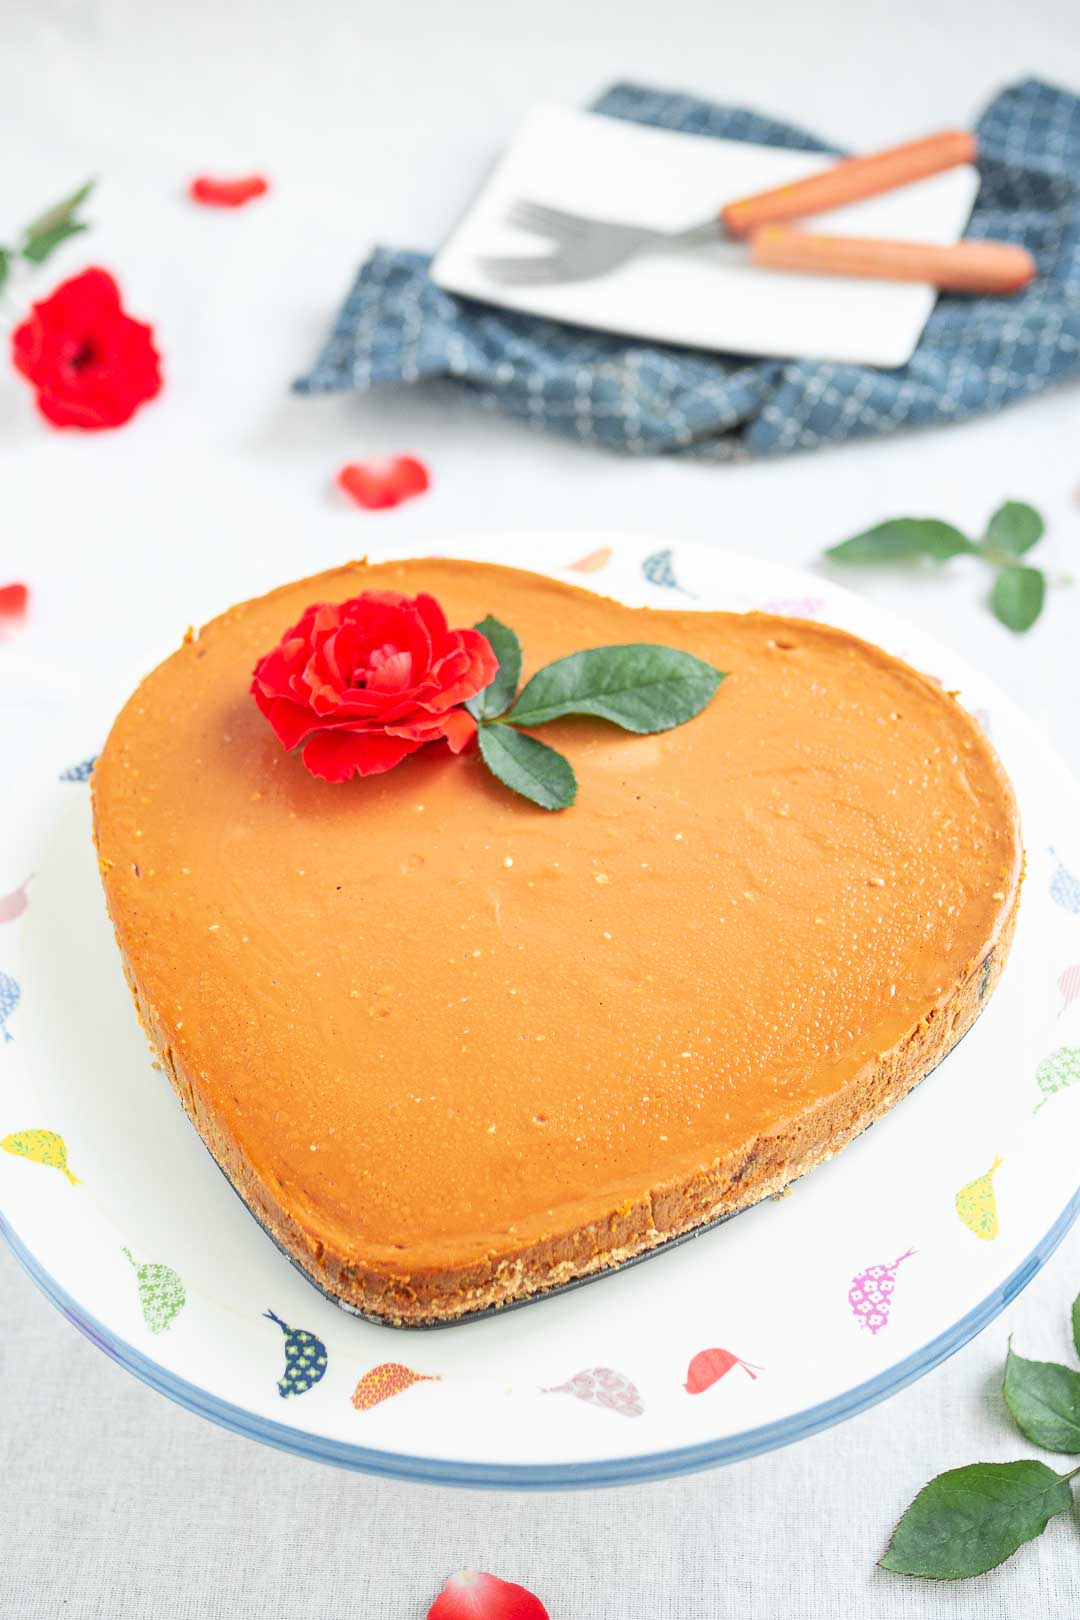 a heart-shaped cake garnished with a red rose that's perfect for Valentine's Day